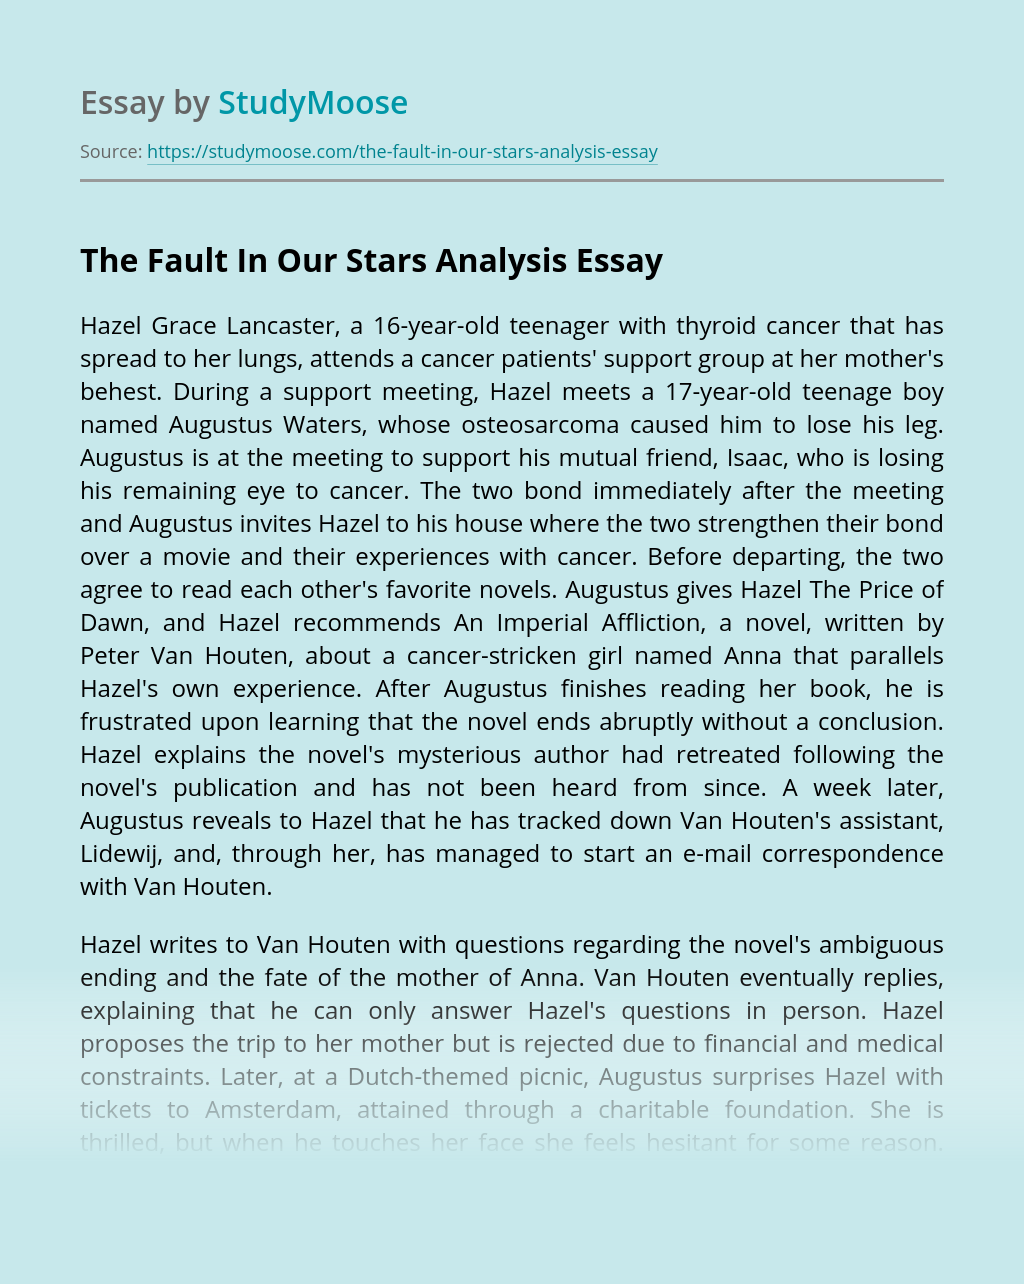 The Fault In Our Stars Analysis